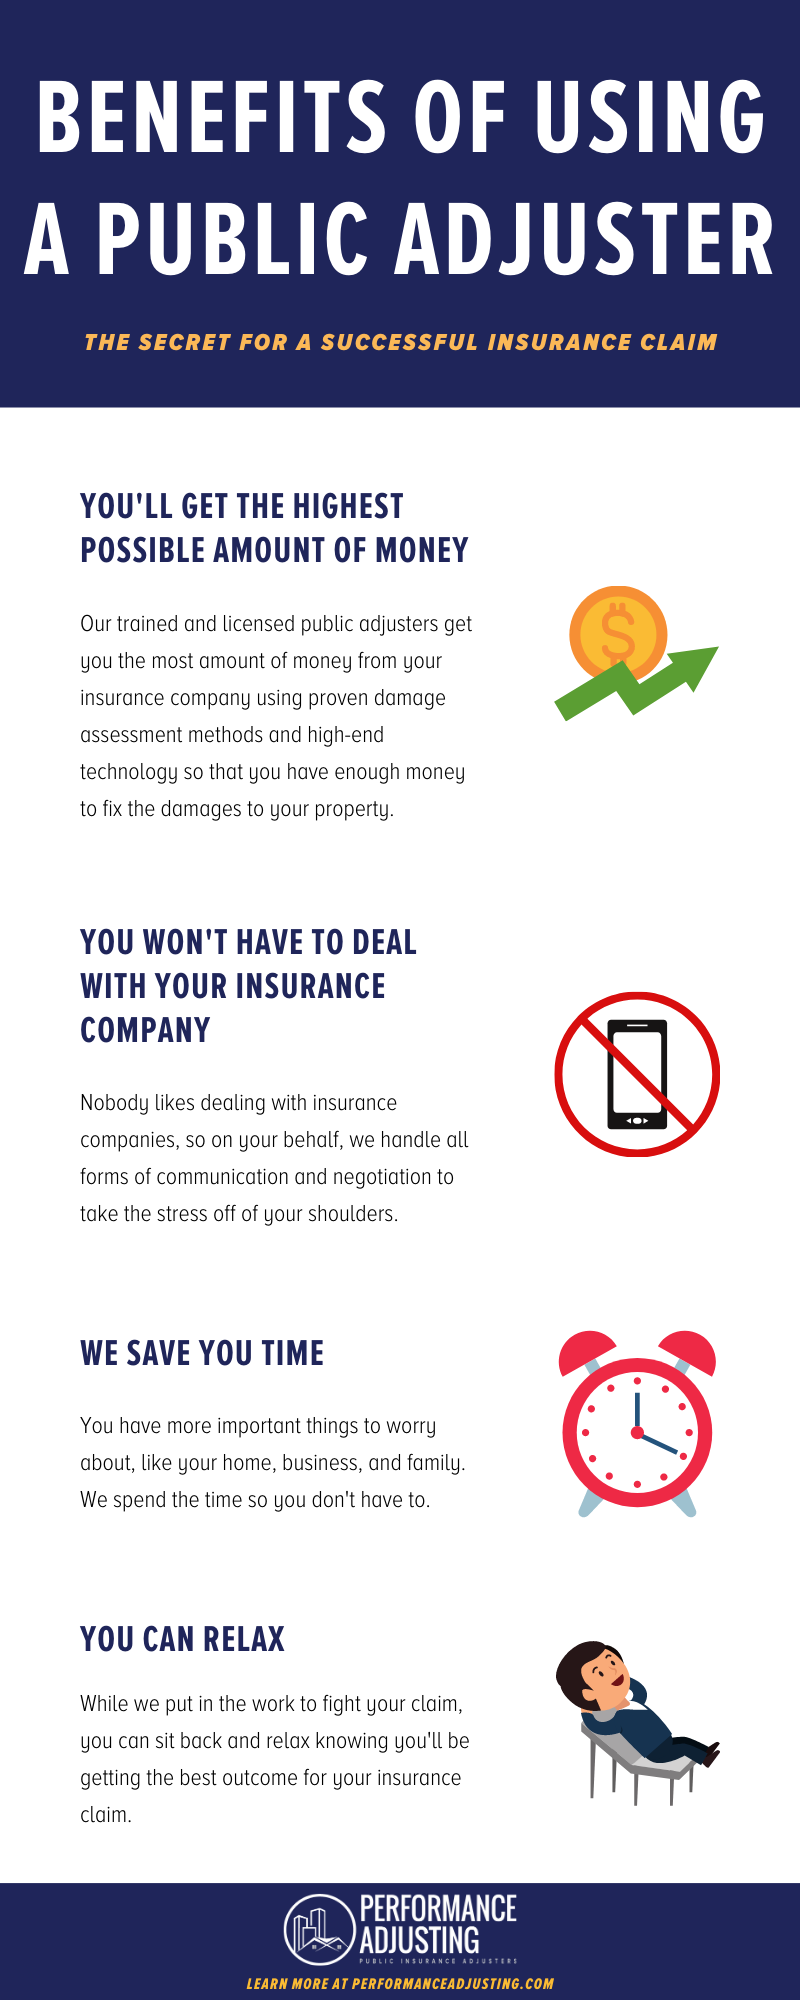 benefits of using a public adjuster Infographic